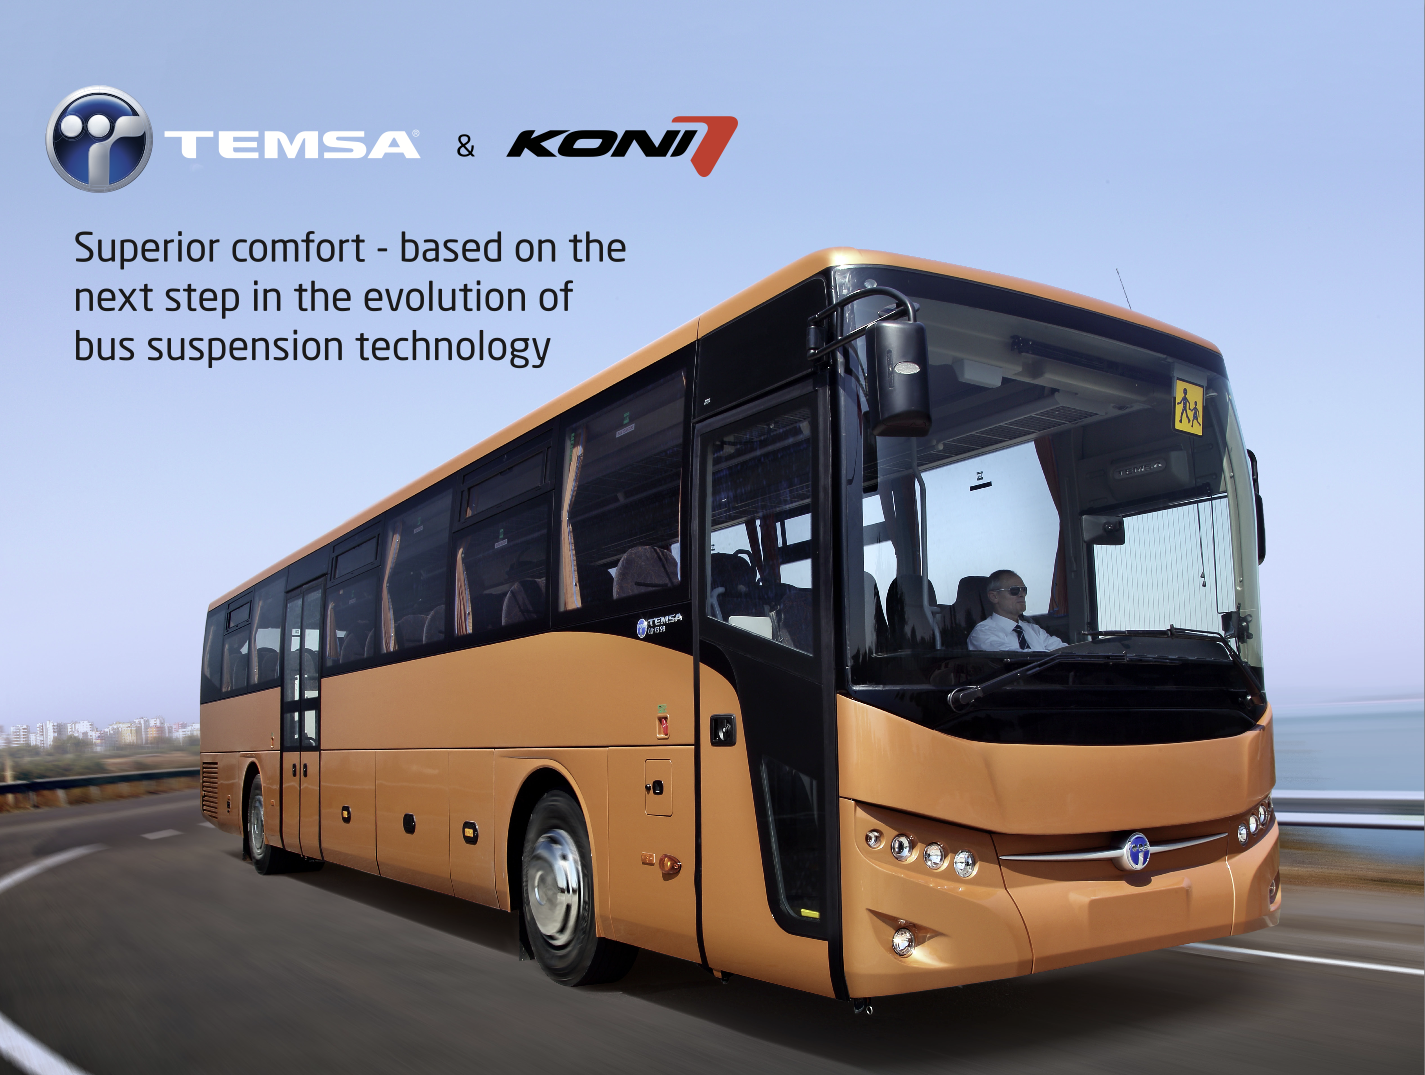 The New KONI EVO 99 Shock Absorber Technology Contributes To High Comfort Level Of Our LD Bus Series Even Under Rough Road Conditions Has